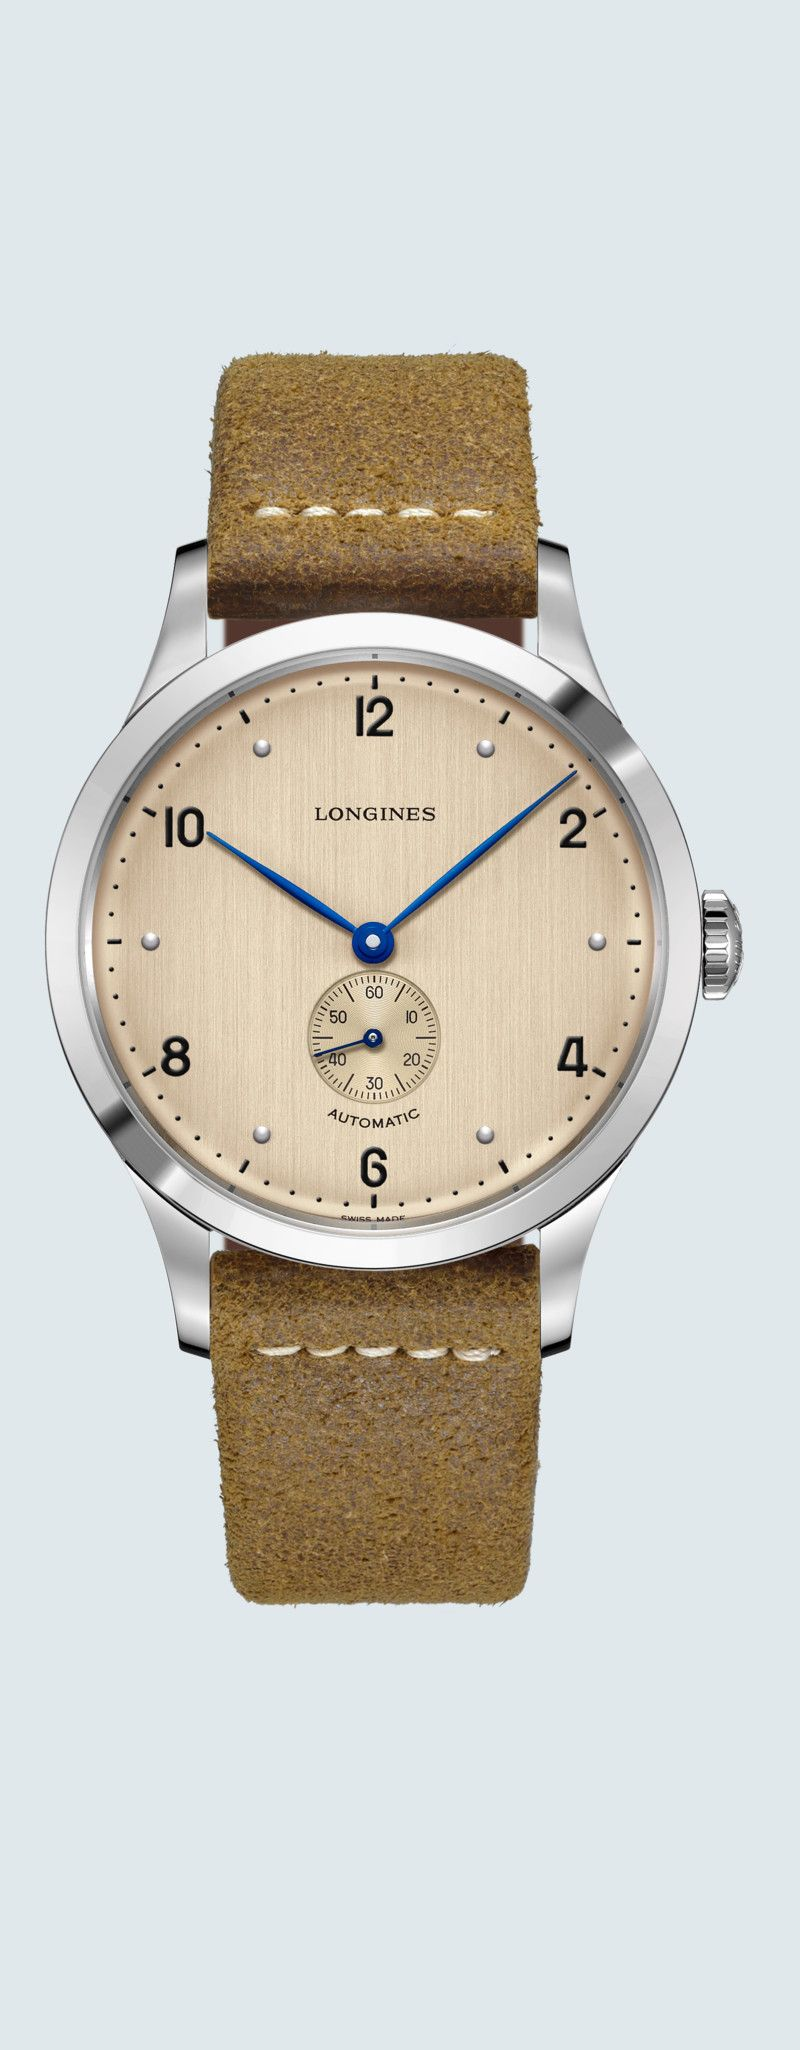 40.00 mm Stainless steel case with Copper dial and Leather strap Beige strap - case zoom view